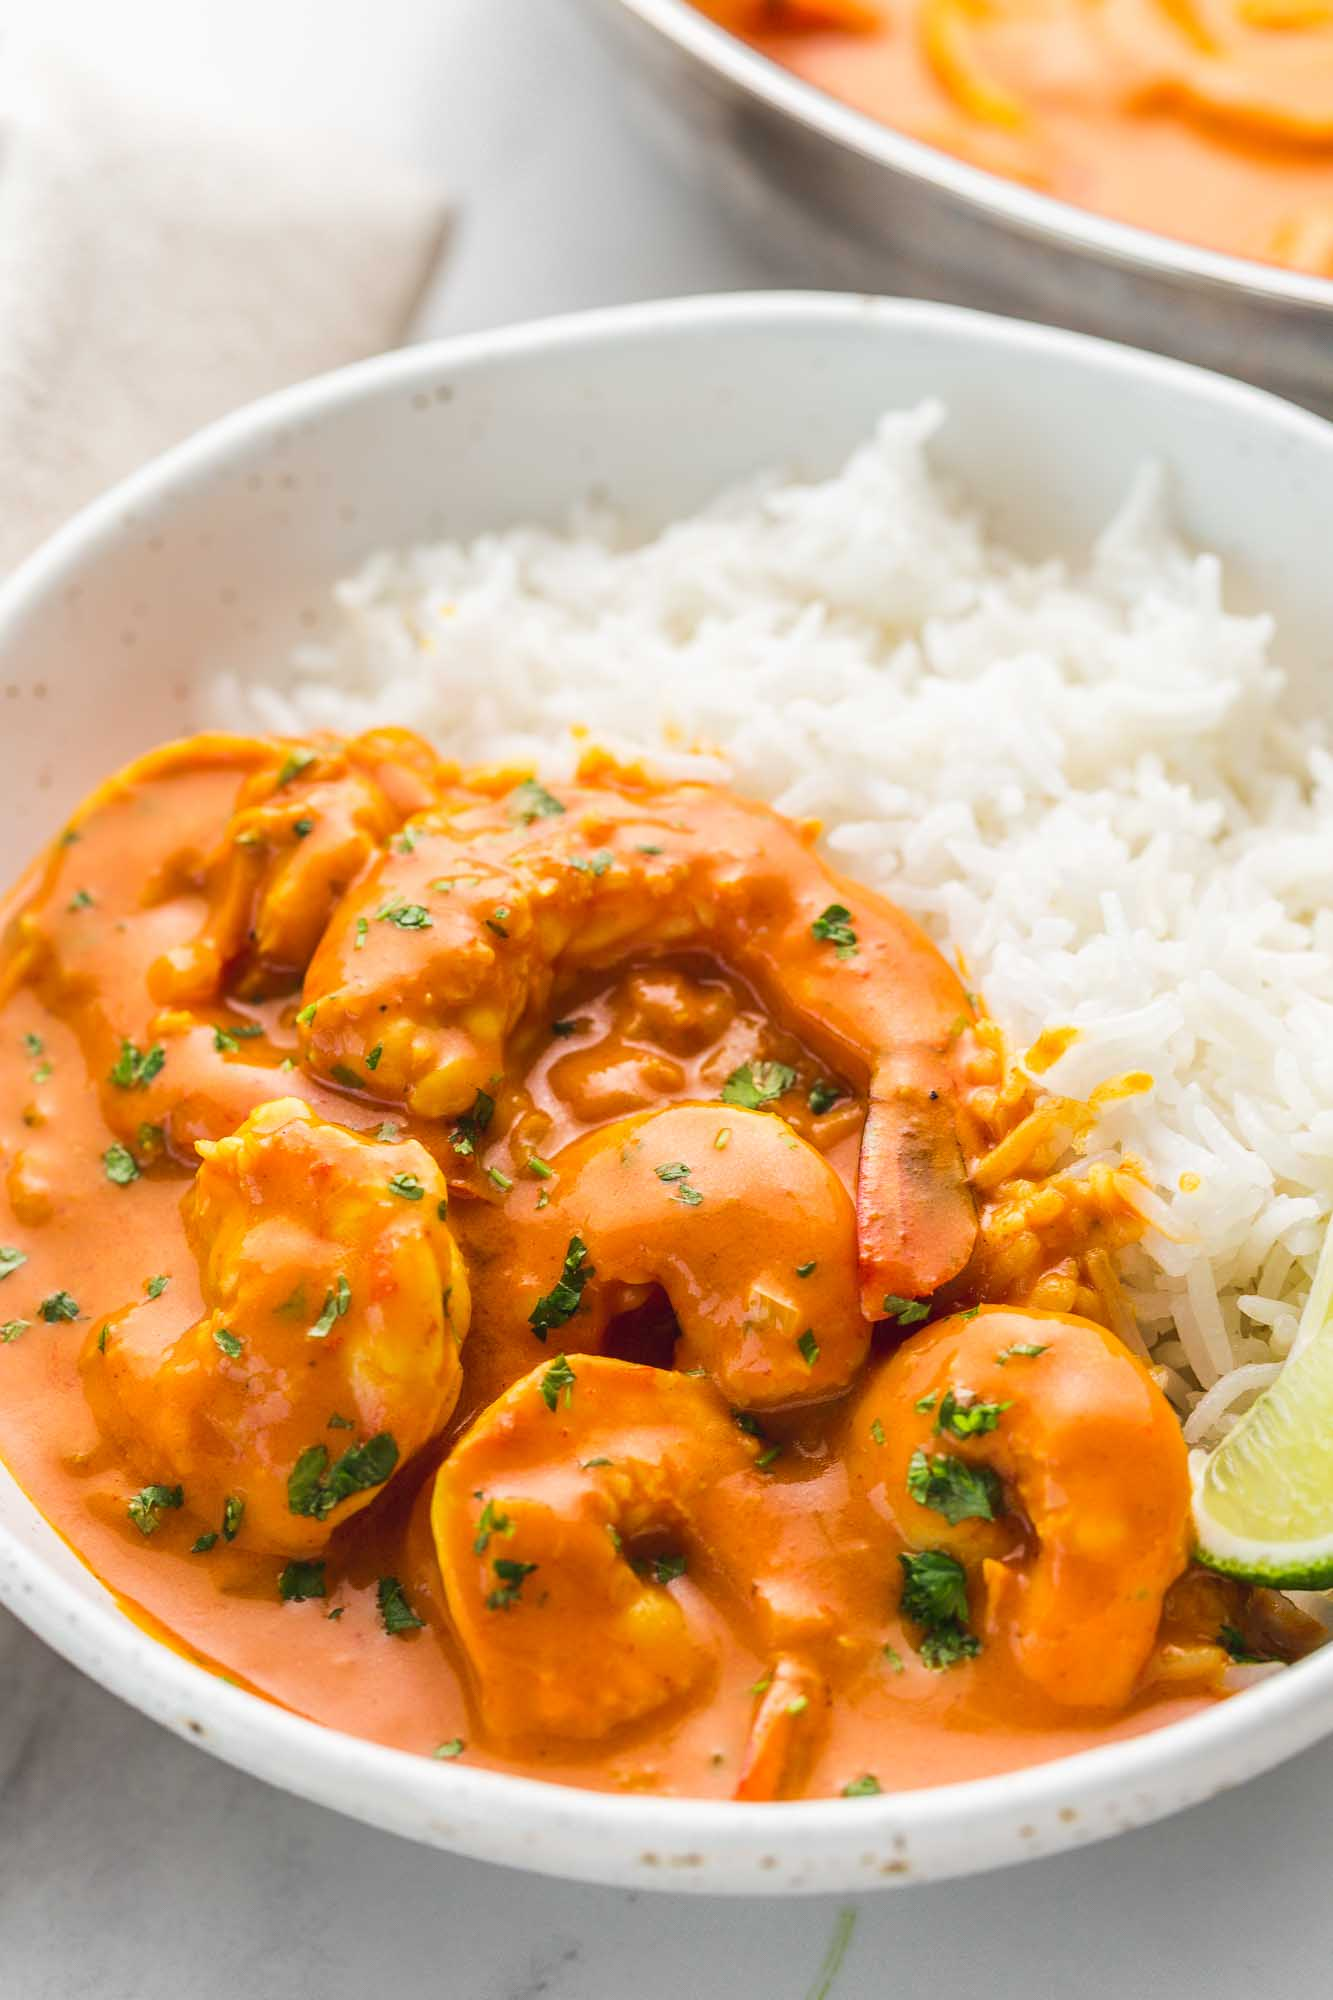 Coconut shrimp curry served in a white bowl with white rice